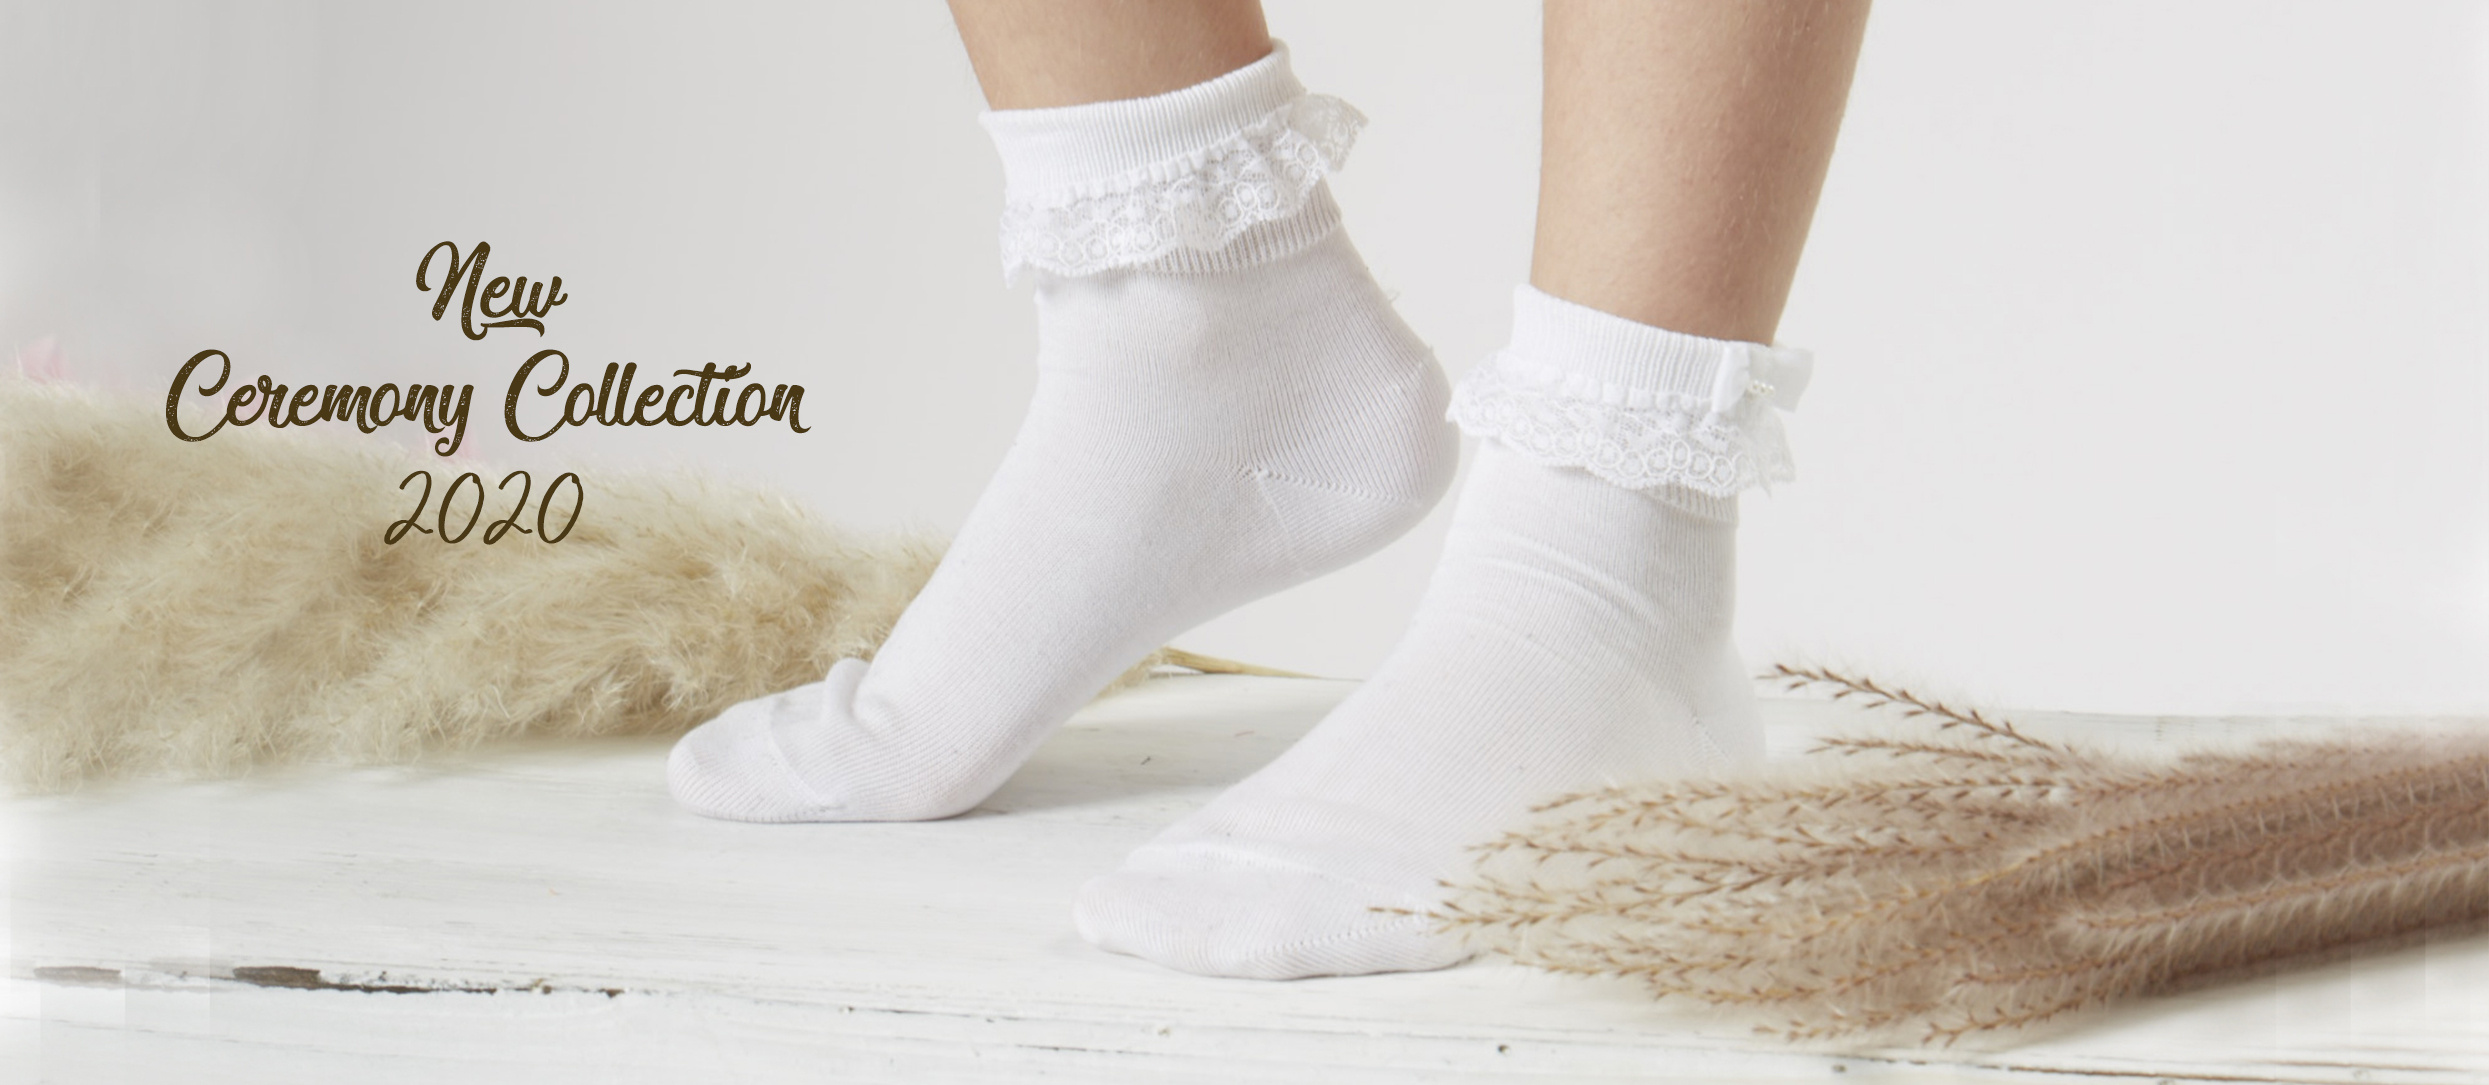 3 PAIRS CONDOR SPANISH BABY /& TODDLER GIRLS OPENWEAVE SHORT WHITE COTTON SOCKS